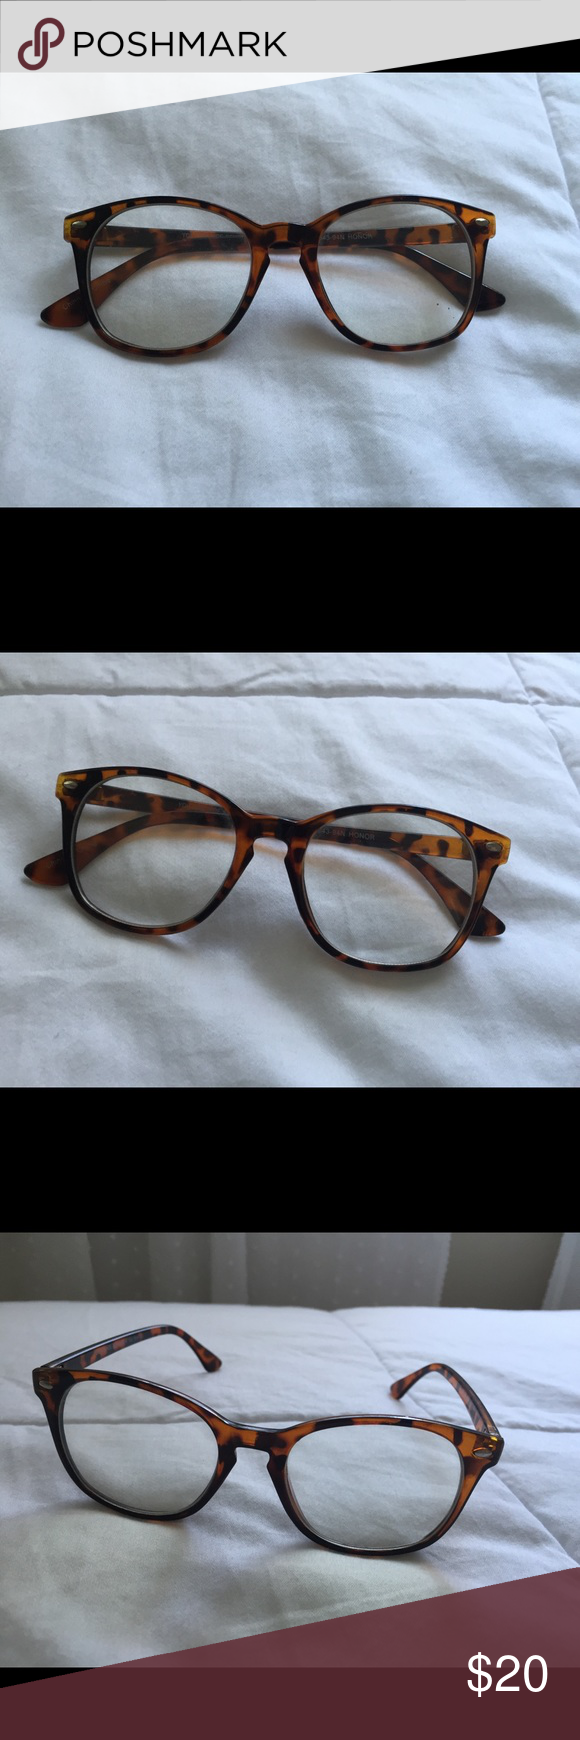 8d6654b21d Urban Outfitters Tortoise Shell Fake Glasses Super cute and trendy! Barely  worn - perfect condition!! Urban Outfitters Accessories Glasses